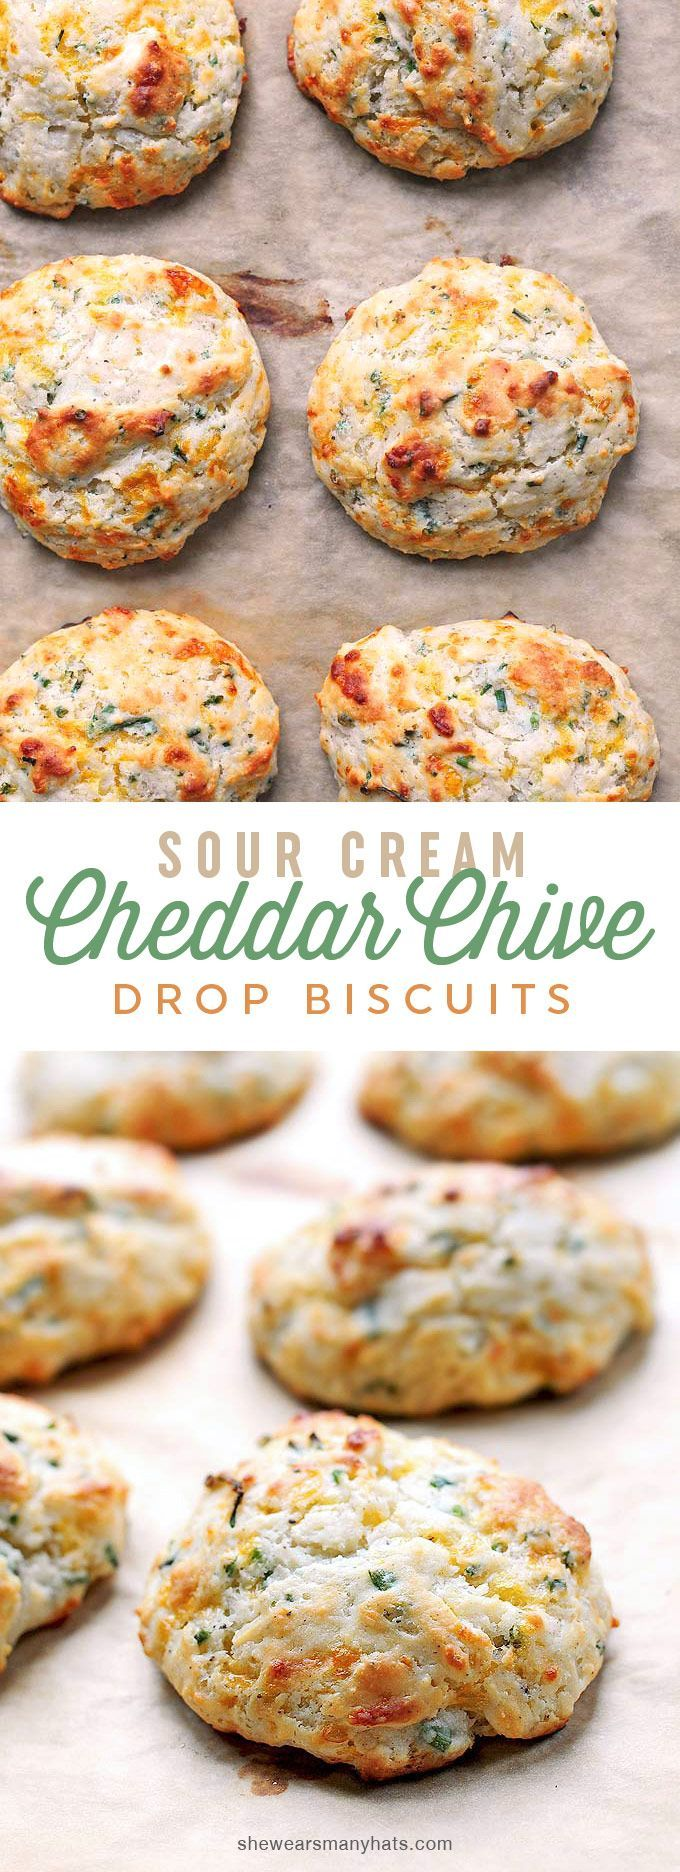 Easy Sour Cream Cheddar Chive Drop Biscuits Recipe | @wearsmanyhats